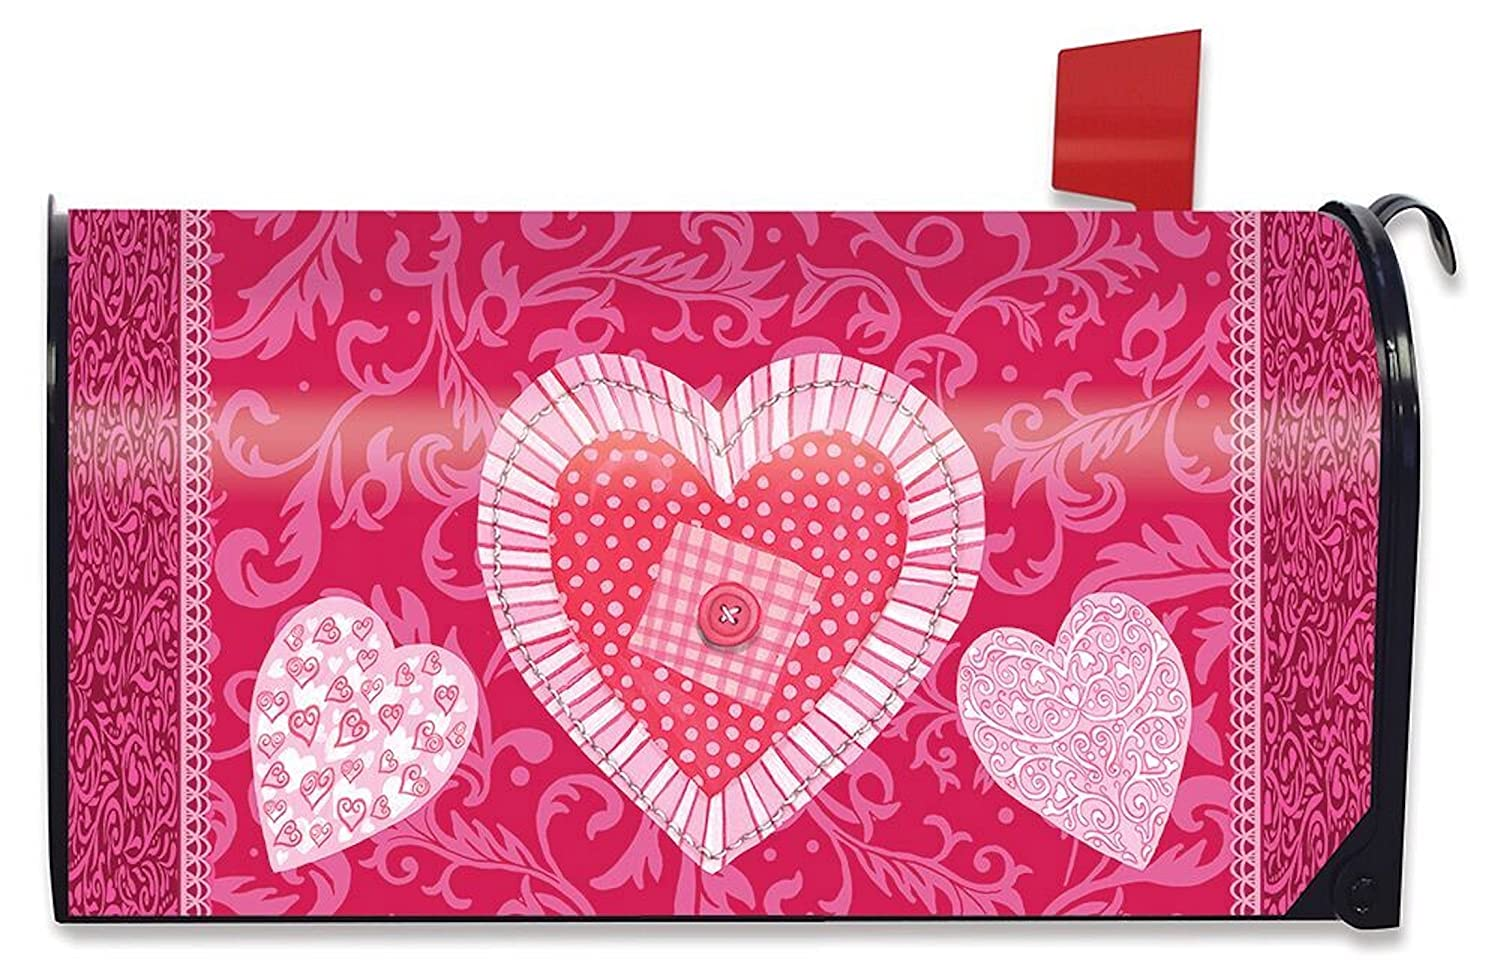 Patchwork Valentine's Day Mailbox Cover